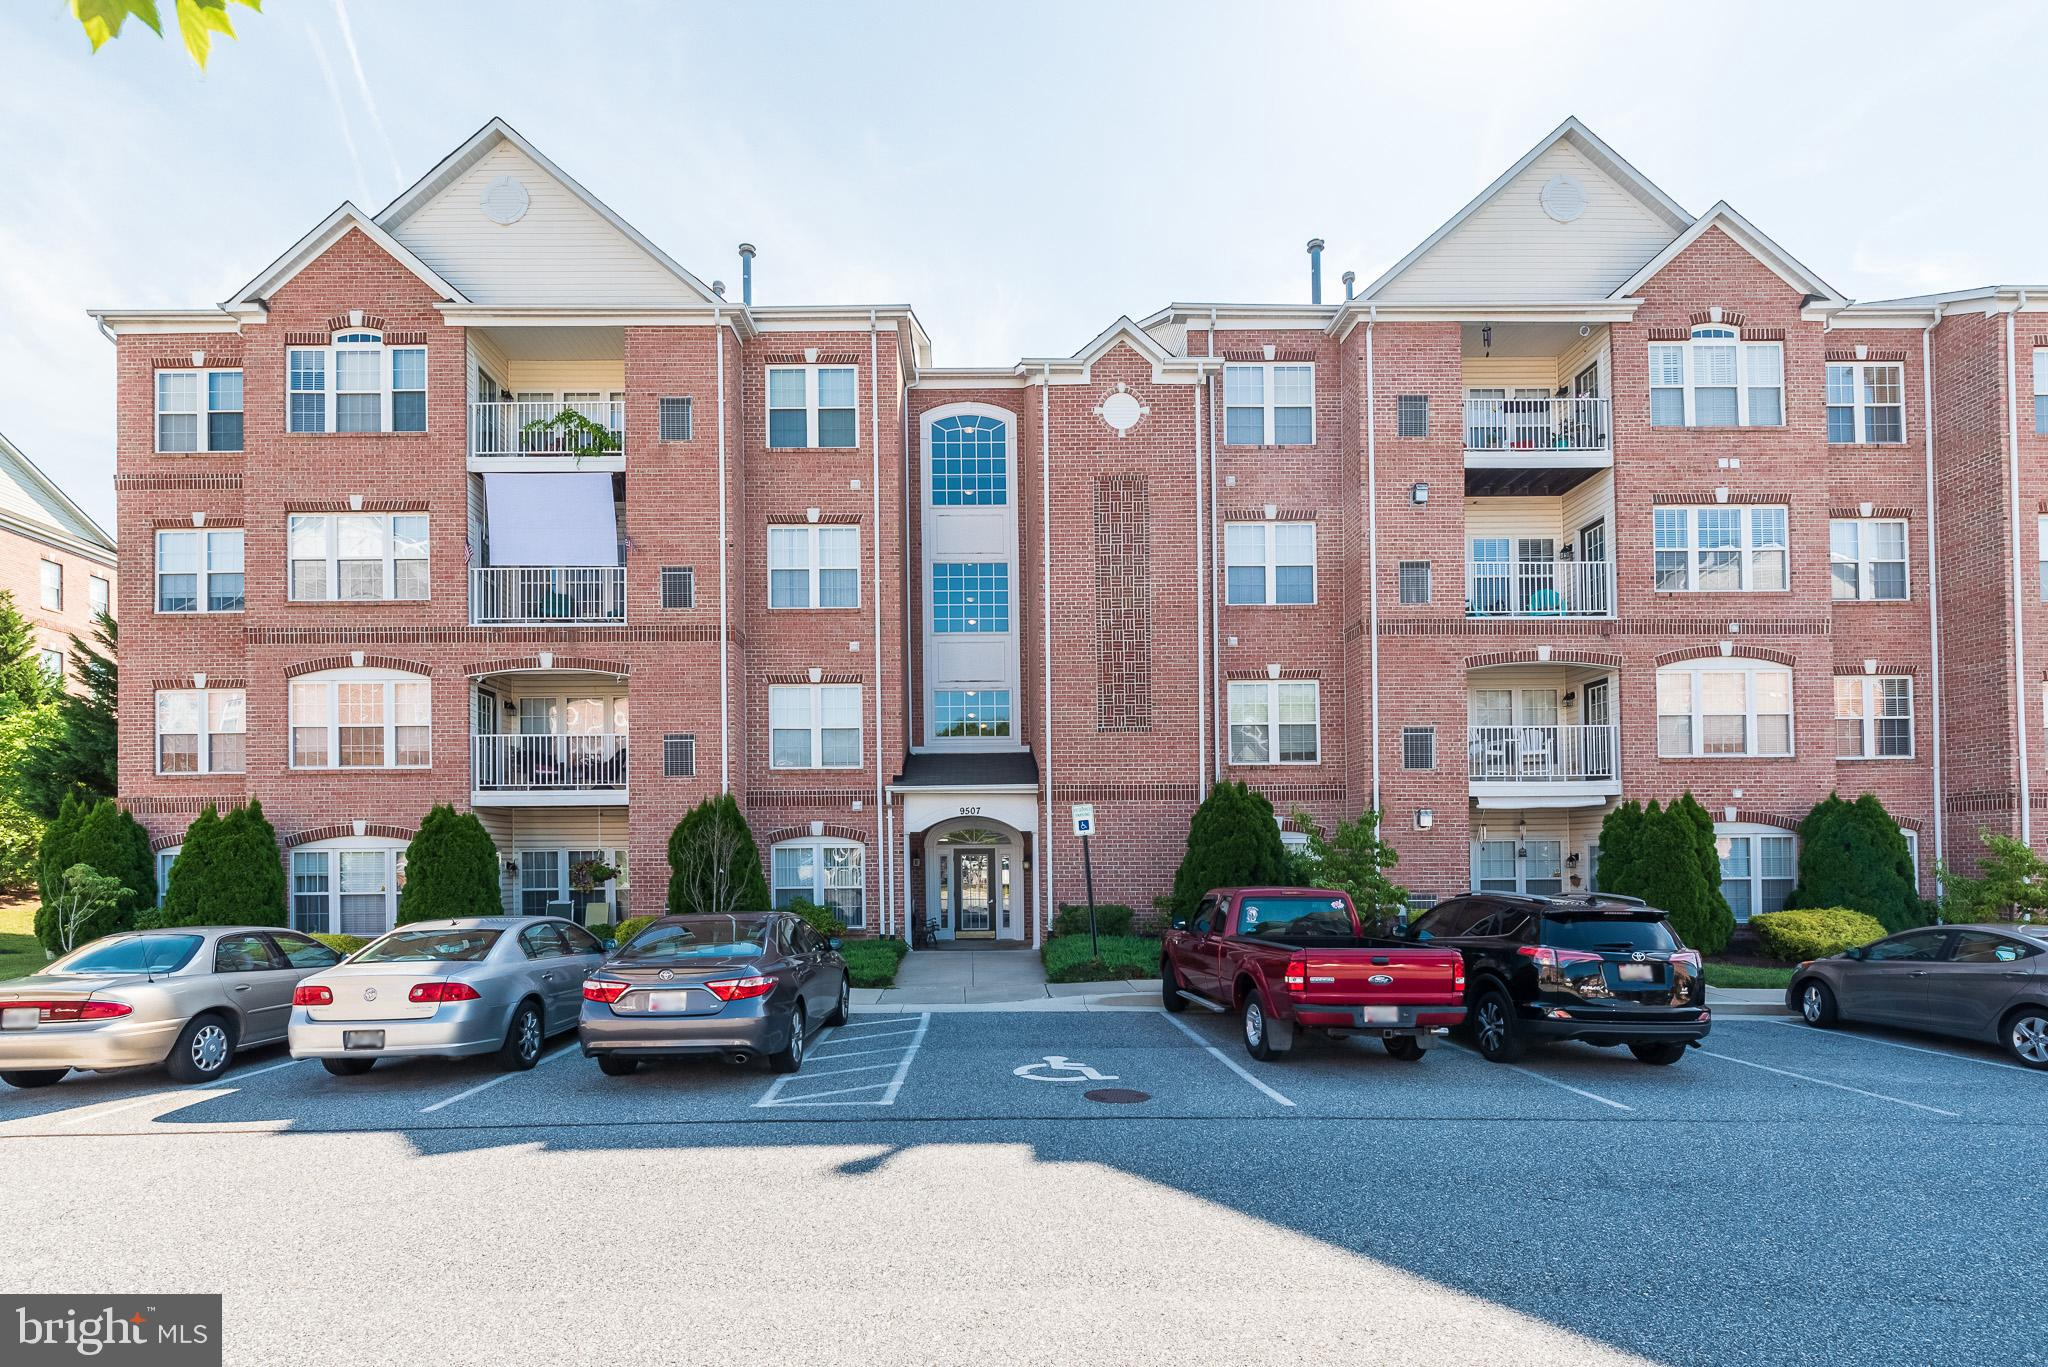 WOW - what a large  condominium.  This is a 4th floor penthouse unit facing away from Honeygo Blvd which makes it super quiet. No one living above you. Private balcony. This community is close to Honeygo Village, White Marsh Mall, and plenty of  restaurants.  Many amenities at your fingertips. Close to major routes. No grass to mow - no snow to shovel. Assigned parking space so you always know where to park. Plenty of unmarked visitor parking for your guests.  This building features a secure entry  with a buzzer system in the vestibule.  You can access the unit by stairs or elevator.  Lovely common areas include a walking path. Upon entrance you will see the open layout with vaulted ceilings, crown moldings and feature wall has a cozy gas fireplace. Bright natural light makes you feel at home.  Large walk in storage closet and coat closet in foyer. Large living room suitable for all types of furniture. There is  a breakfast bar overlooking the kitchen sink  with stools and a breakfast/sunroom off the kitchen/ living room area to put a table/chairs.  Plus there is  a formal dining room open to the living room.  Large master bedroom with sitting area. Vaulted ceilings give a grand feeling.  Spacious master bath and large walk in closet are features of this master suite. The closet conveniently  includes a built-in ironing center.  The second bedroom is off the living room with a full bath beside it. Washer and Dryer with storage next to kitchen.  Open Kitchen with lots of storage. Wi-fi thermostat installed to control the temperature while away from home.  New refrigerator in 2018.  New Hot Water Heater and Air Conditioning Unit/Furnace replaced in 2016. Furnishings negotiable. This unit has been well maintained and spotless.  Learn to live a relaxed life! Come see your new home before it's gone!